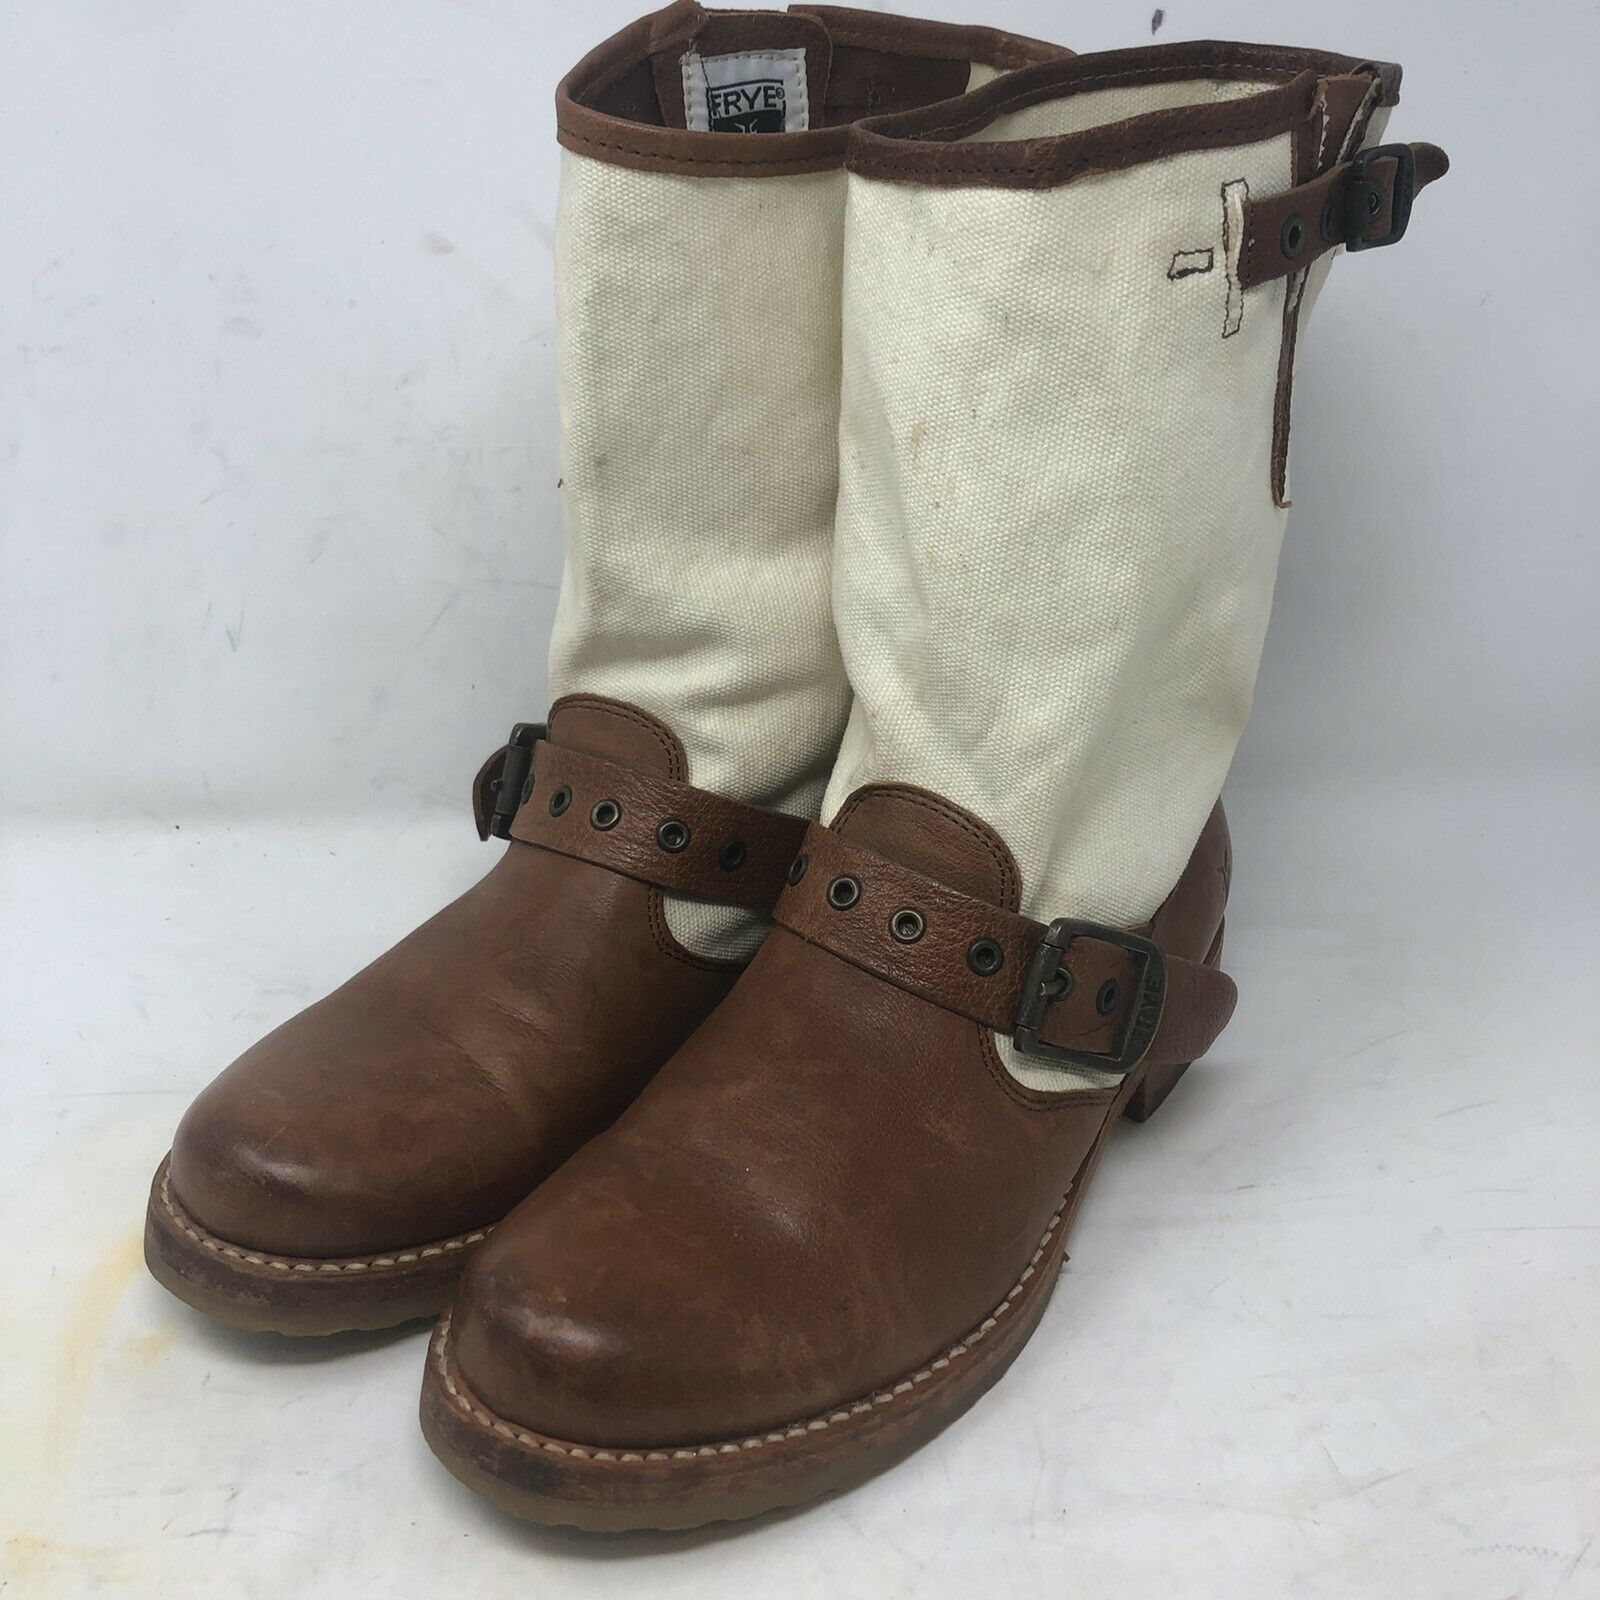 Frye Veronica Boots Short Harness Riding Motorcycle Canvas Women's Size 7.5 B